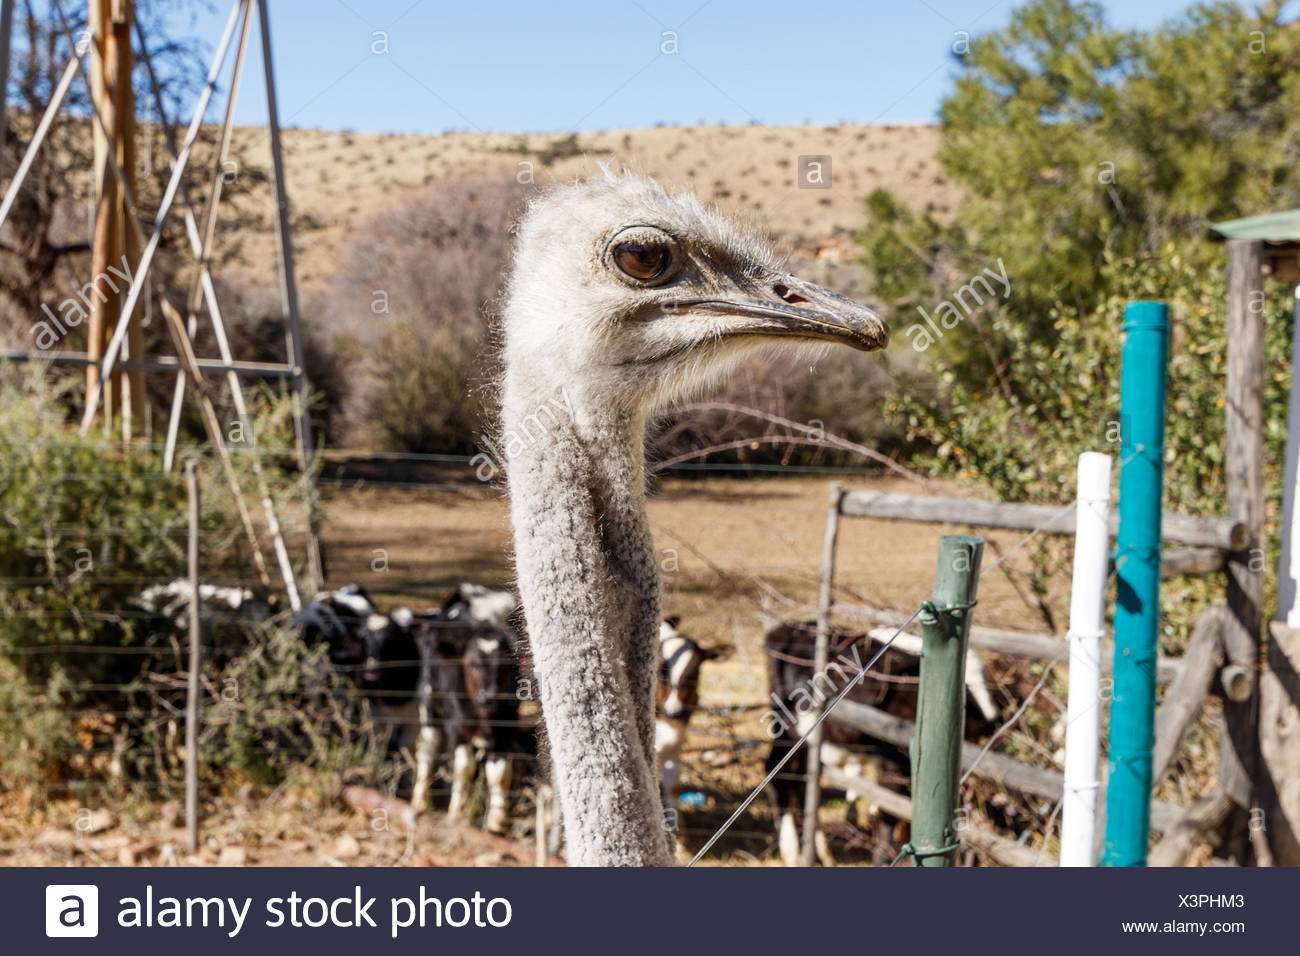 Ostrich - Head up and very inquisitive - Stock Image